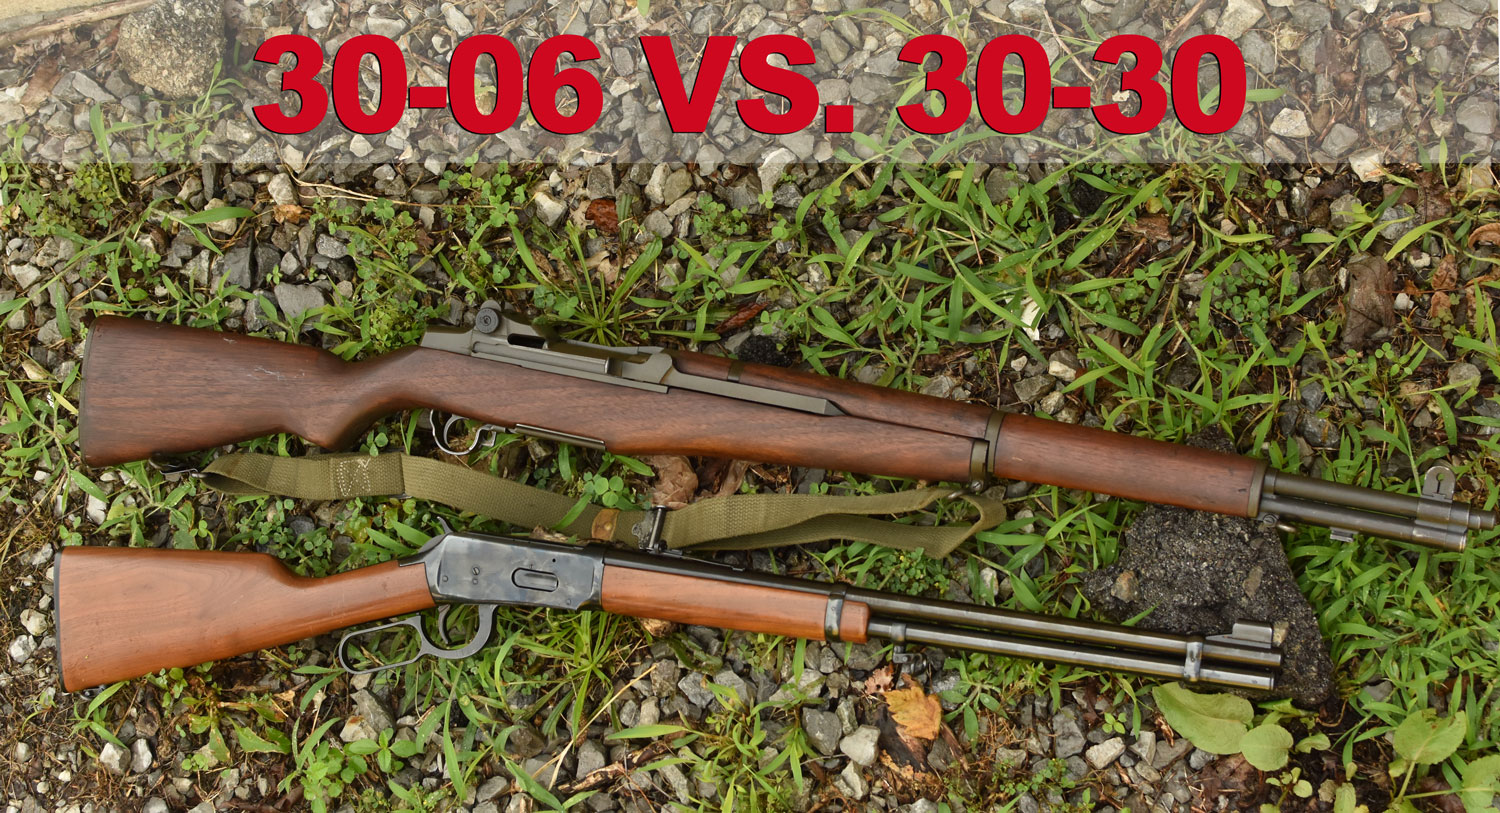 30-30 vs. 30-30 rifles